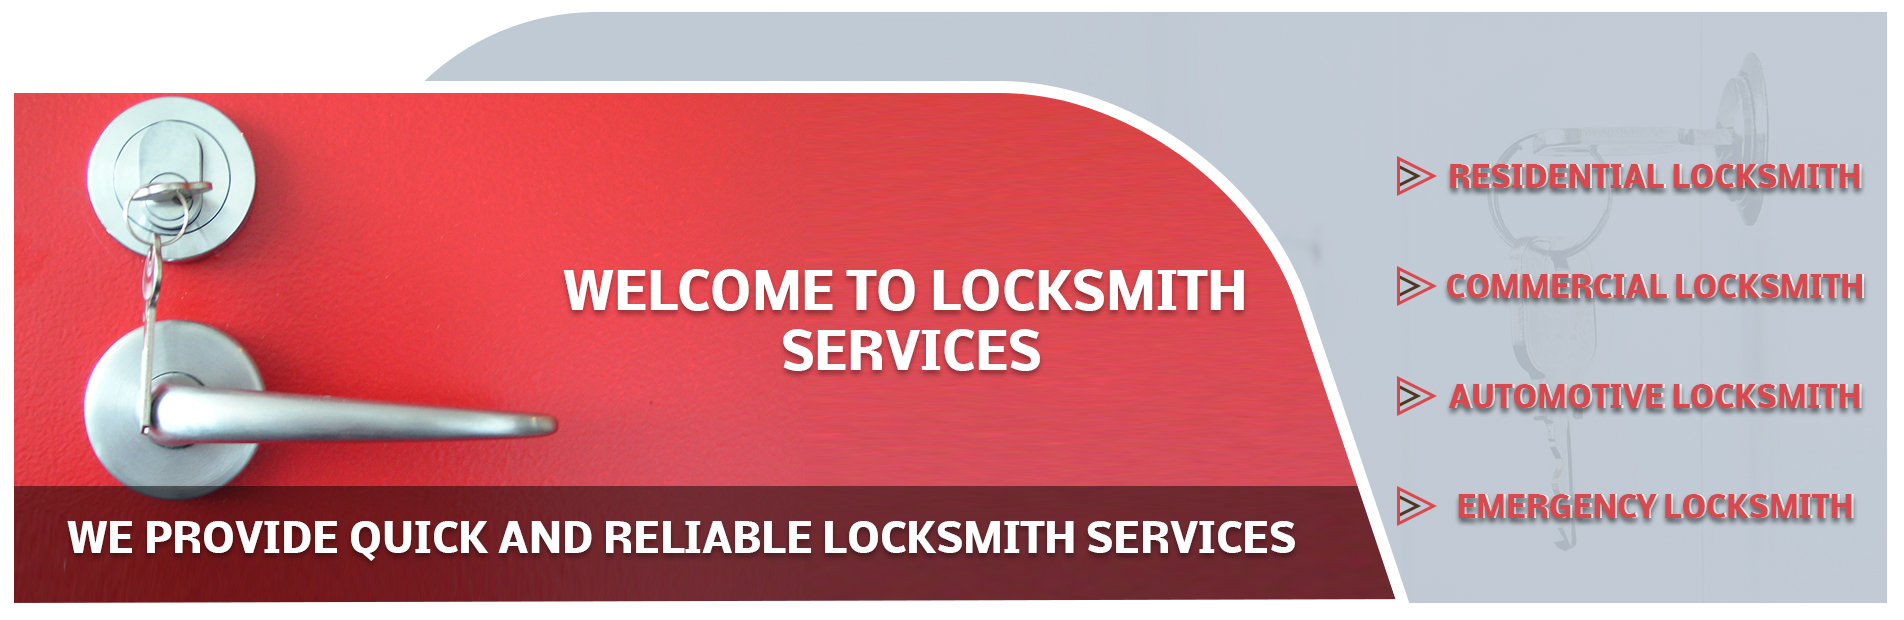 Estate Locksmith Store Harwood Heights, IL 708-401-1101